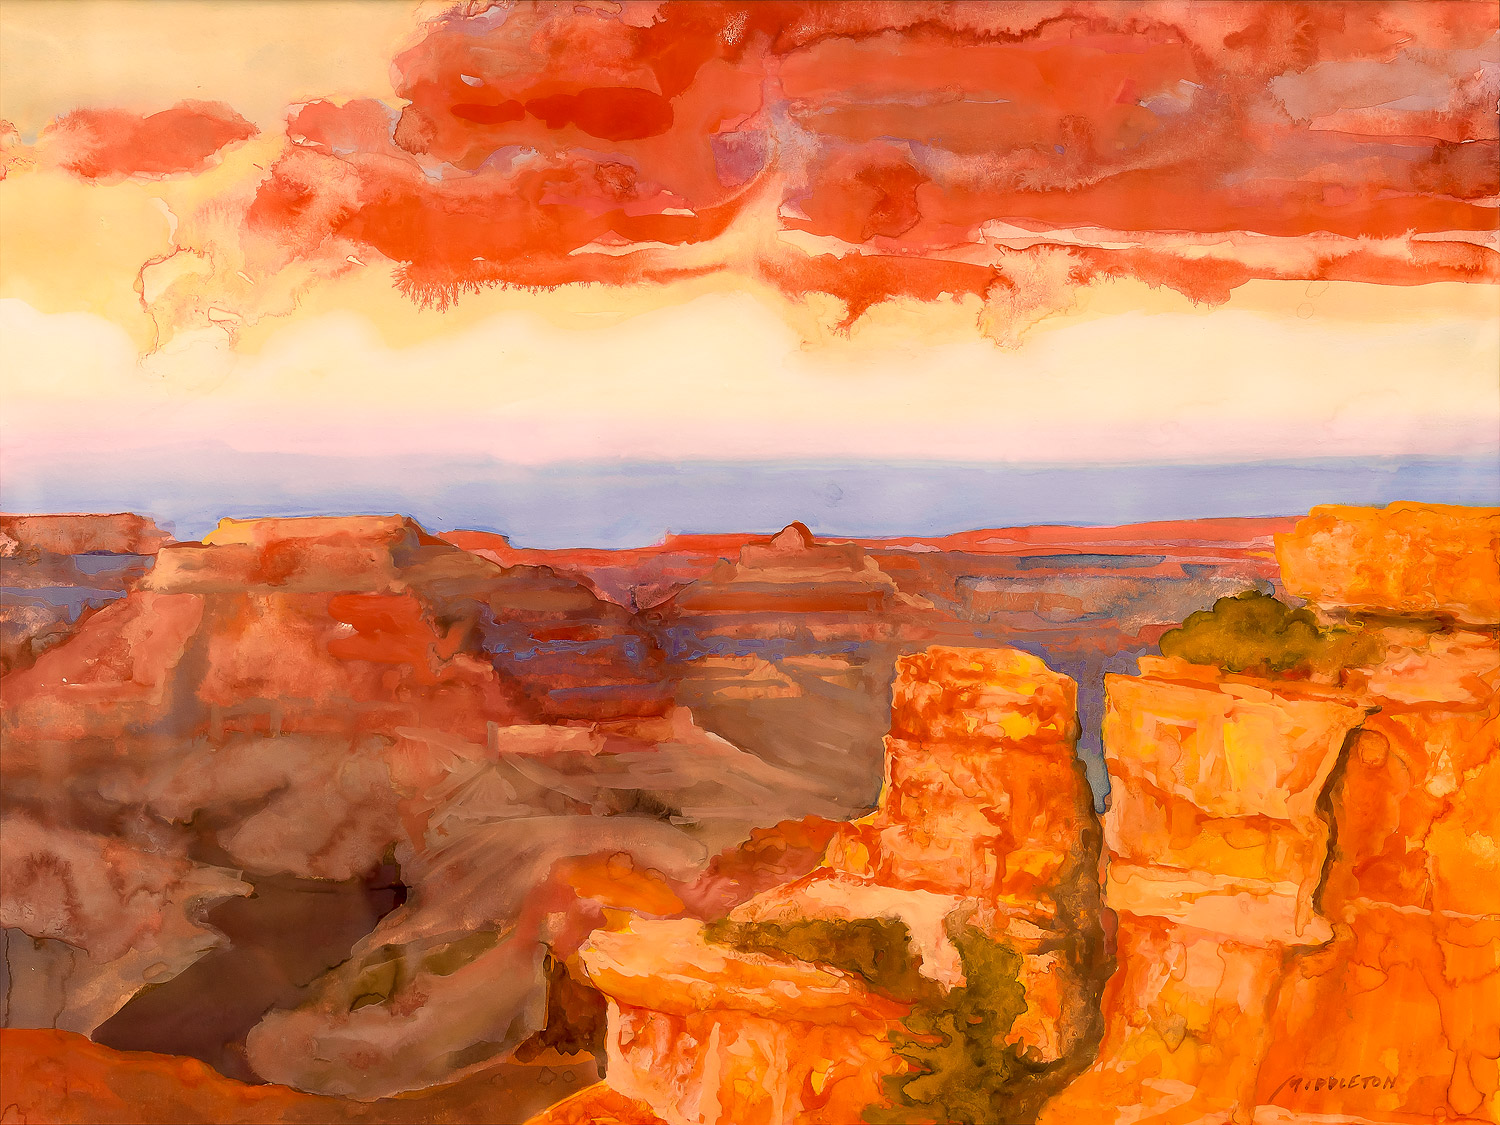 Grand Canyon   ©1995 is a 12 x 16 watercolor and gouache on smooth watercolor paper.    A close version of this image is   Grand Canyon No. 4   ©2017, a 12 x 16 pigment inkjet on a smooth 16 x 20 watercolor paper. It is available for $50.